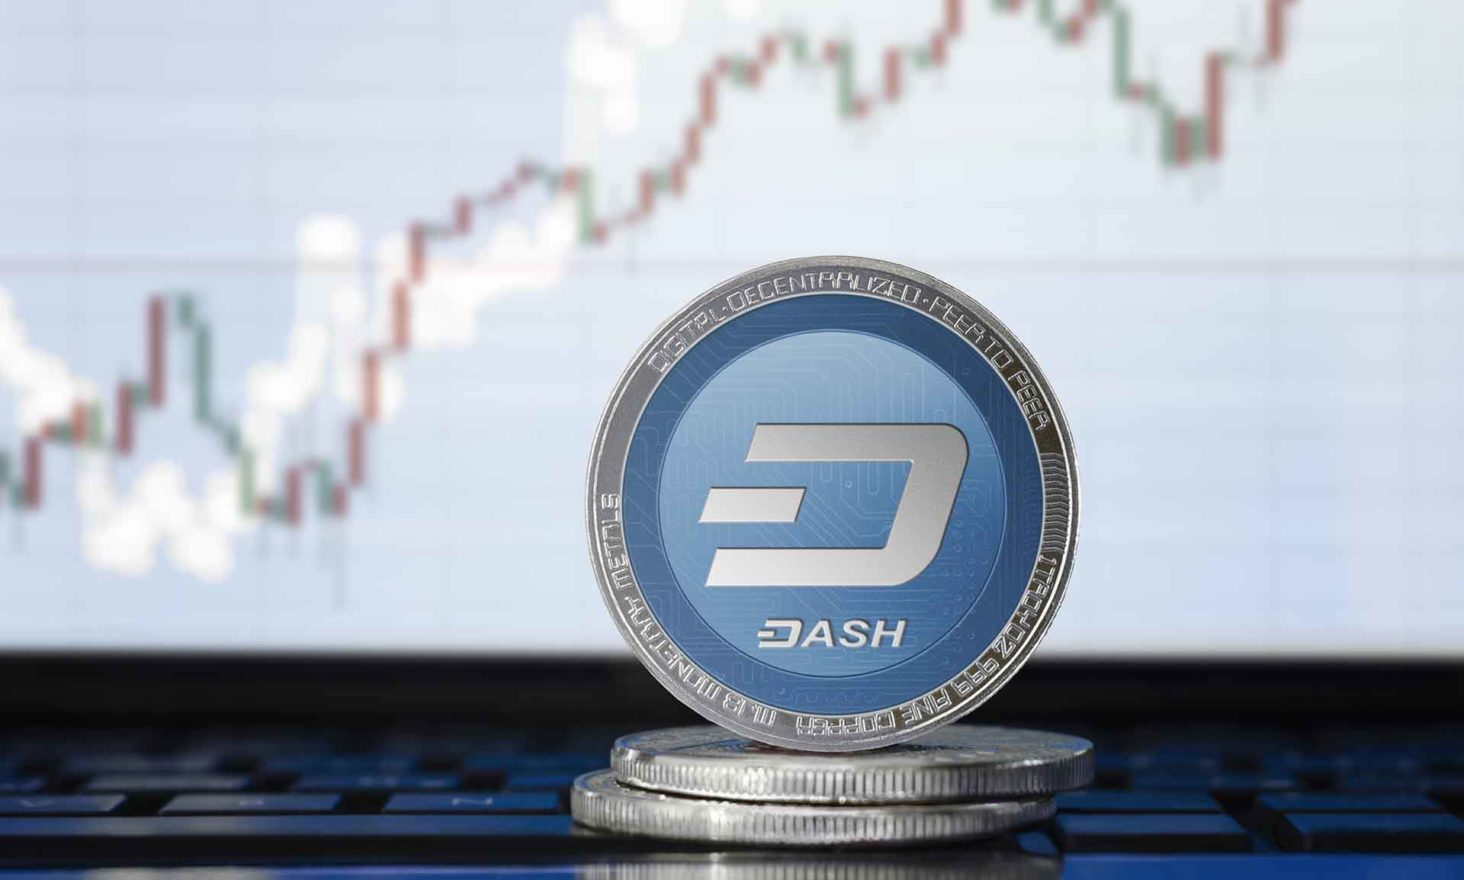 Why invest in Dash?